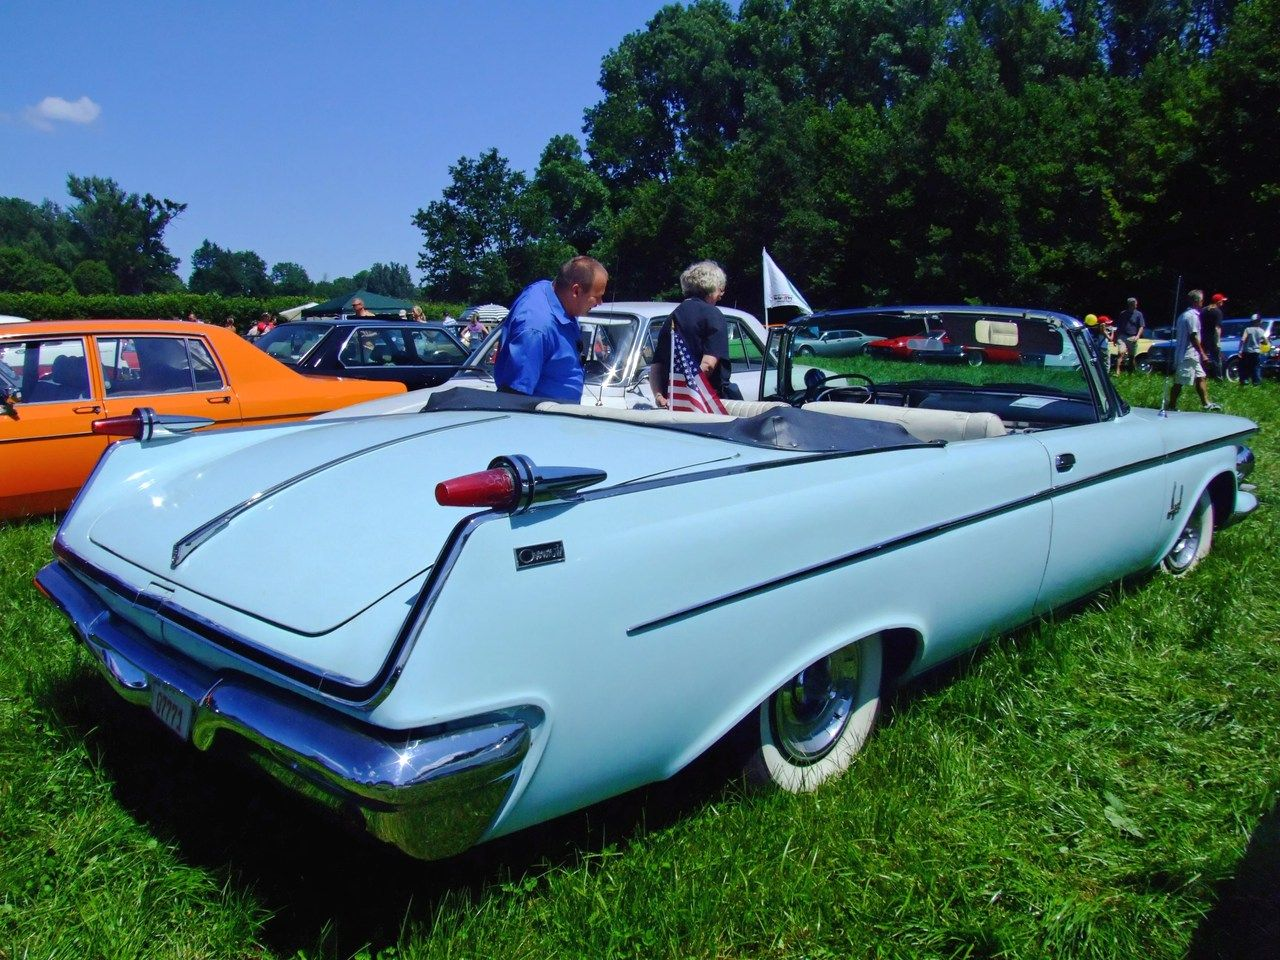 Chrysler 200 Wikipedia >> Image Result For 62 Imperial Convertible Chrysler Cars